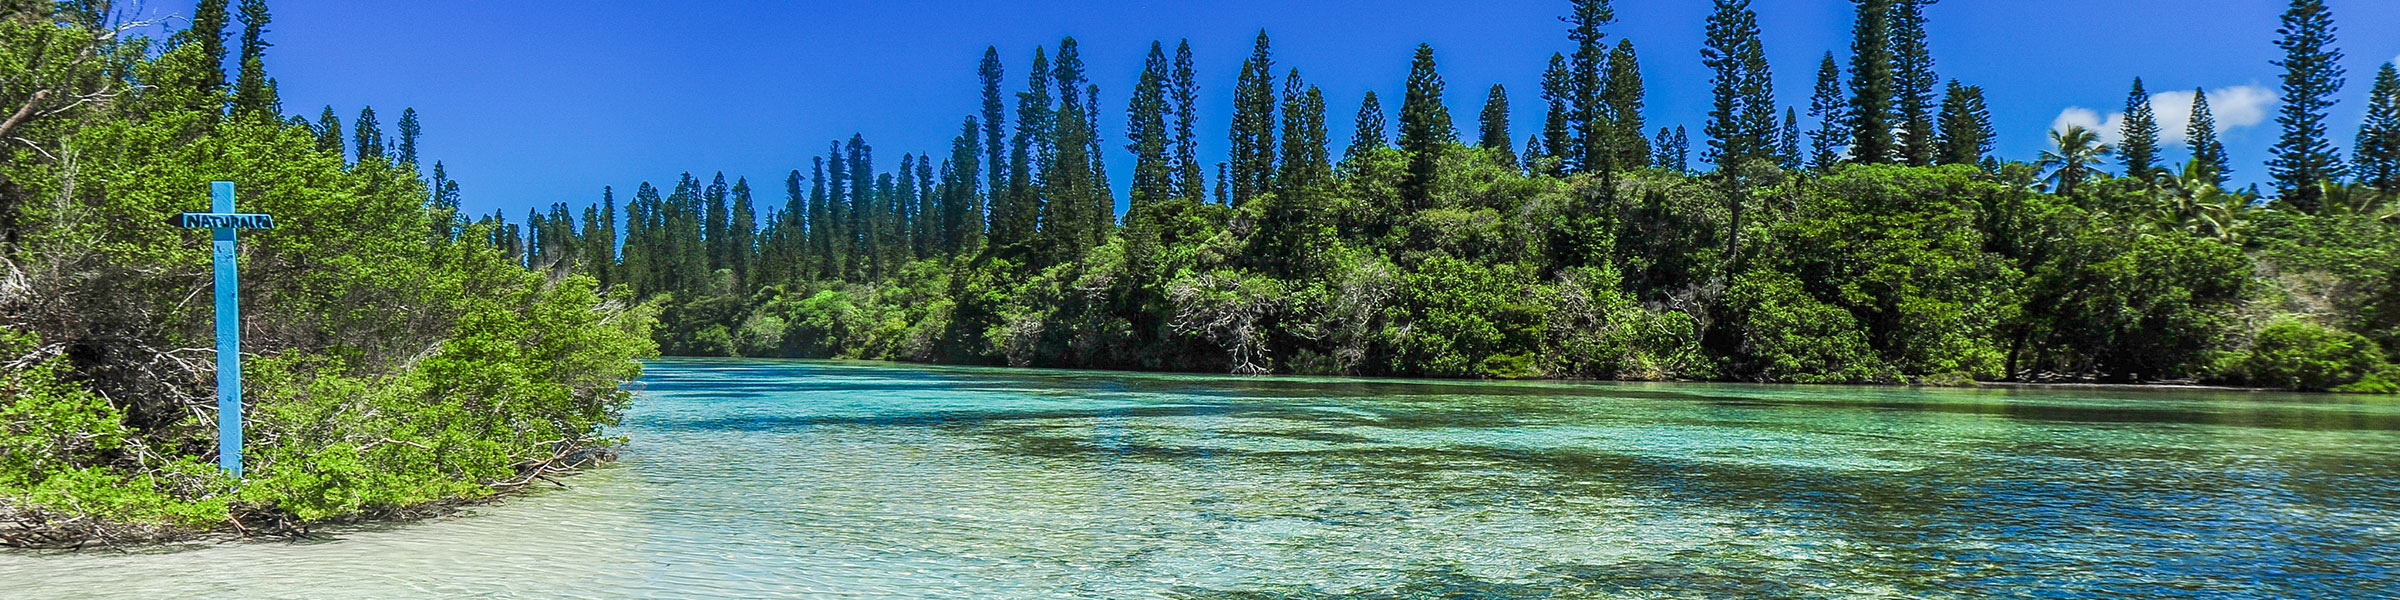 Île des Pins (Isle of Pines), New Caledonia